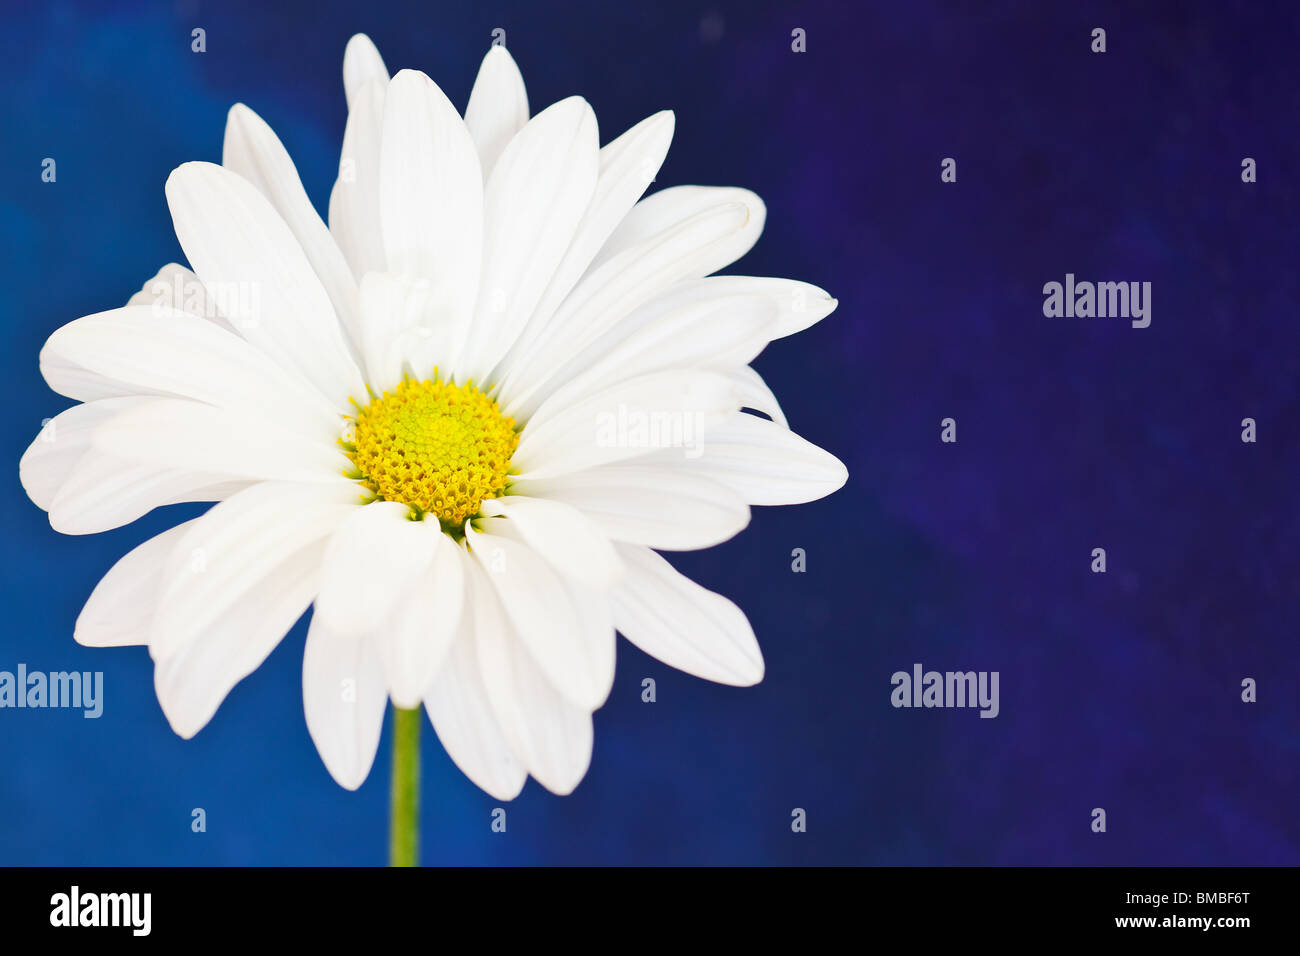 white and yellow daisy on a hand painted watercolor background - Stock Image